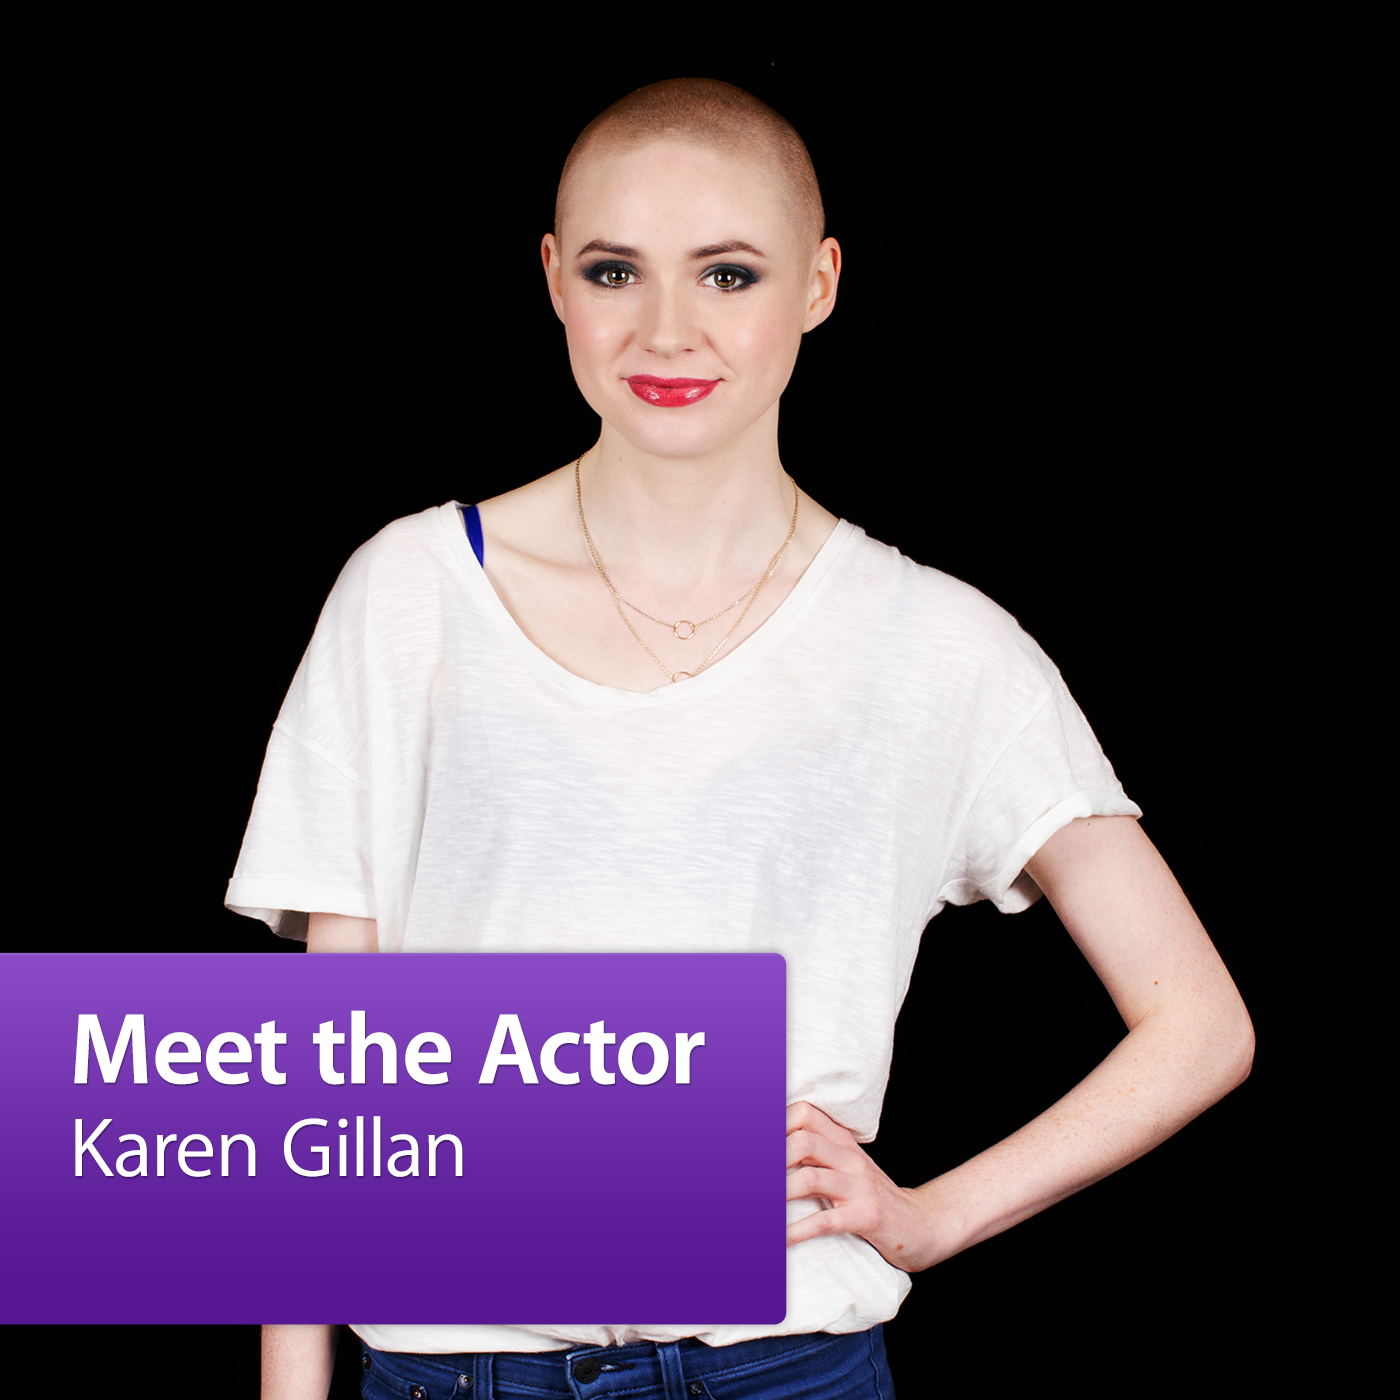 Karen Gillan: Meet the Actor